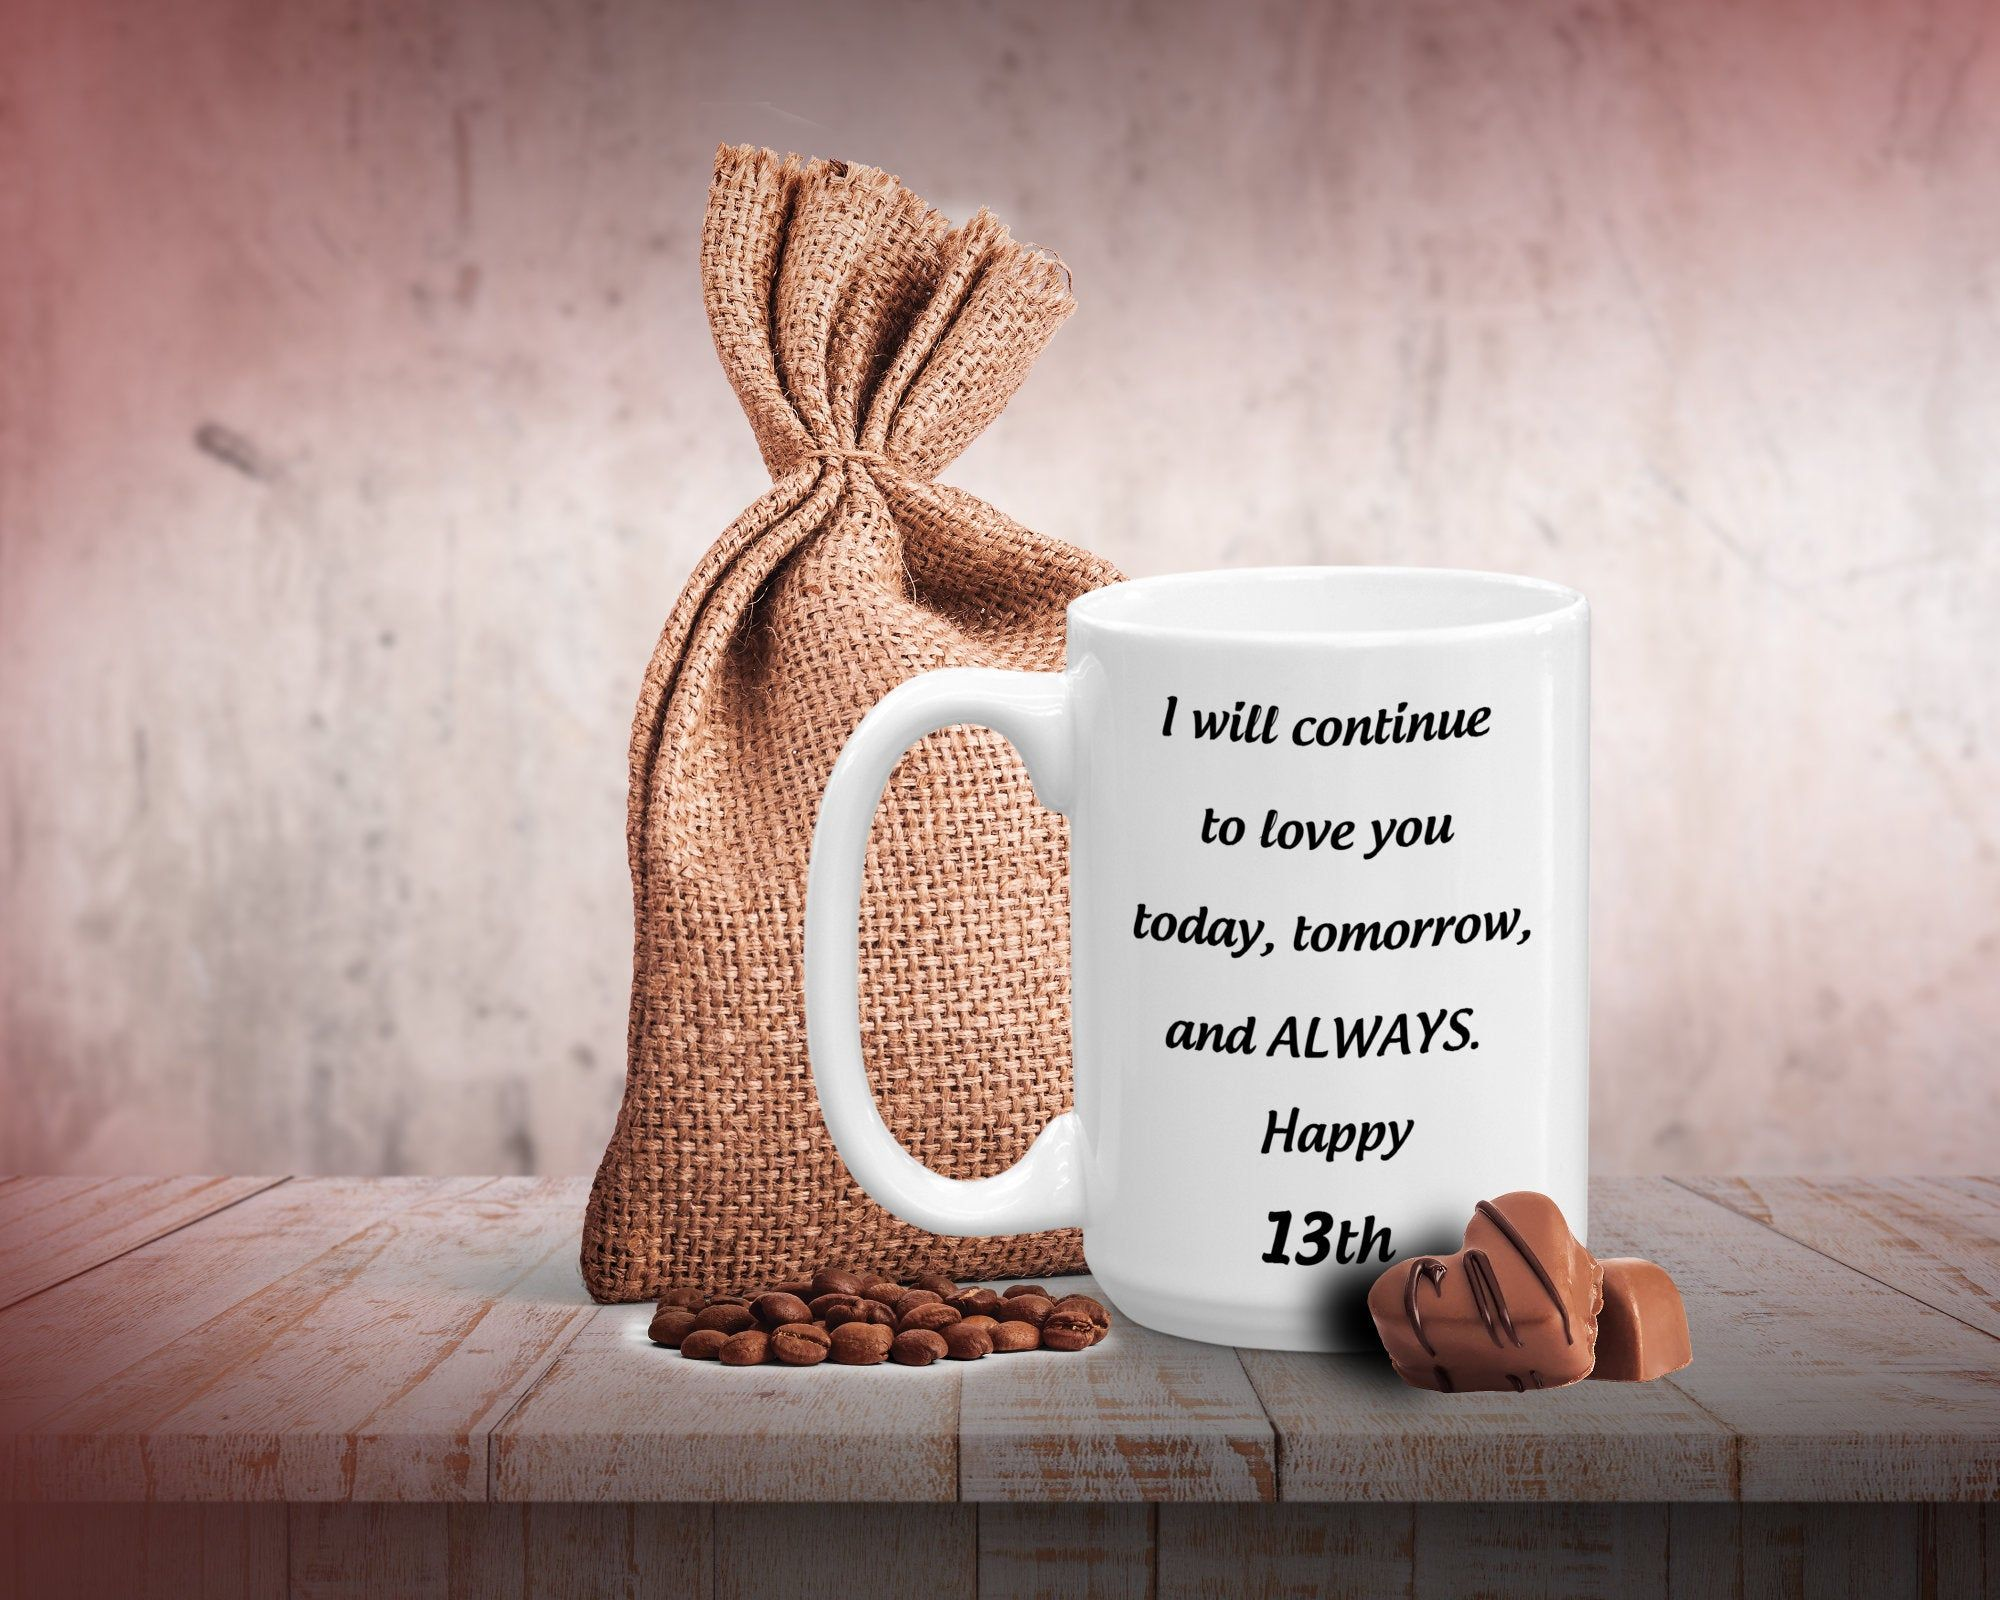 13rd Anniversary Gift For Him 13rd Year Anniversary 13rd Etsy 13th Wedding Anniversary Gift 13th Anniversary Gifts Anniversary Gifts